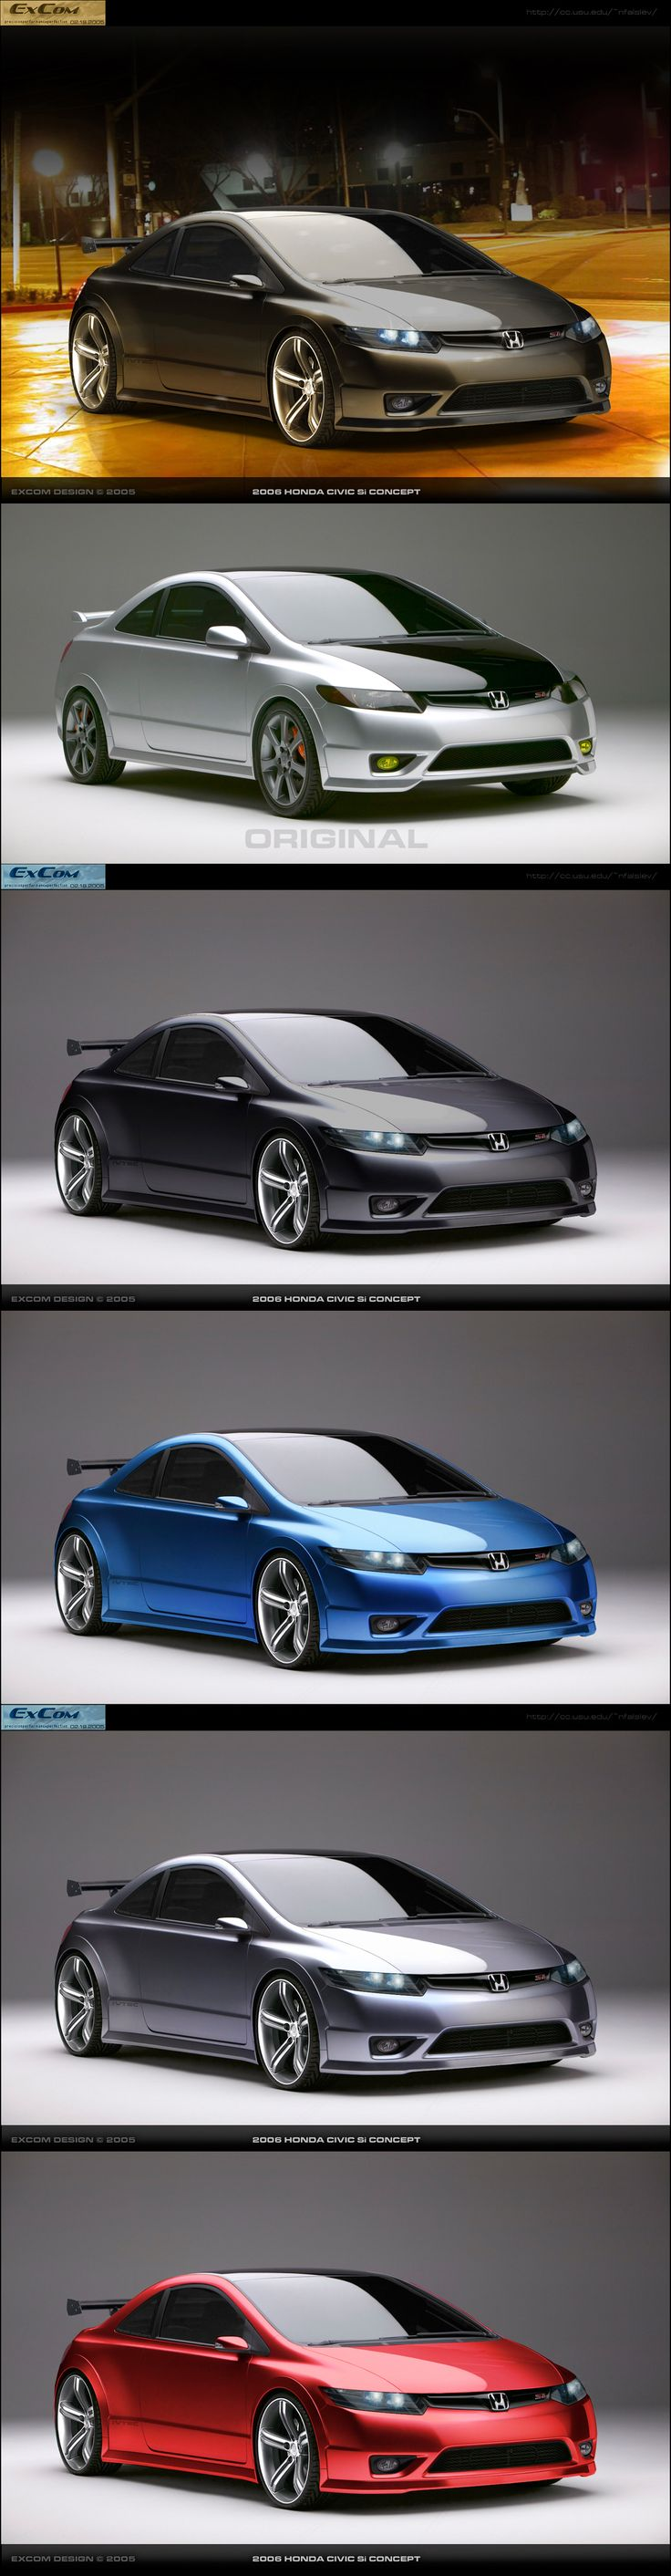 2006 Honda Civic Si Concept by ~ExCom on deviantART ✏✏✏✏✏✏✏✏✏✏✏✏✏✏✏✏ IDEE CADEAU / CUTE GIFT IDEA  ☞ http://gabyfeeriefr.tumblr.com/archive ✏✏✏✏✏✏✏✏✏✏✏✏✏✏✏✏